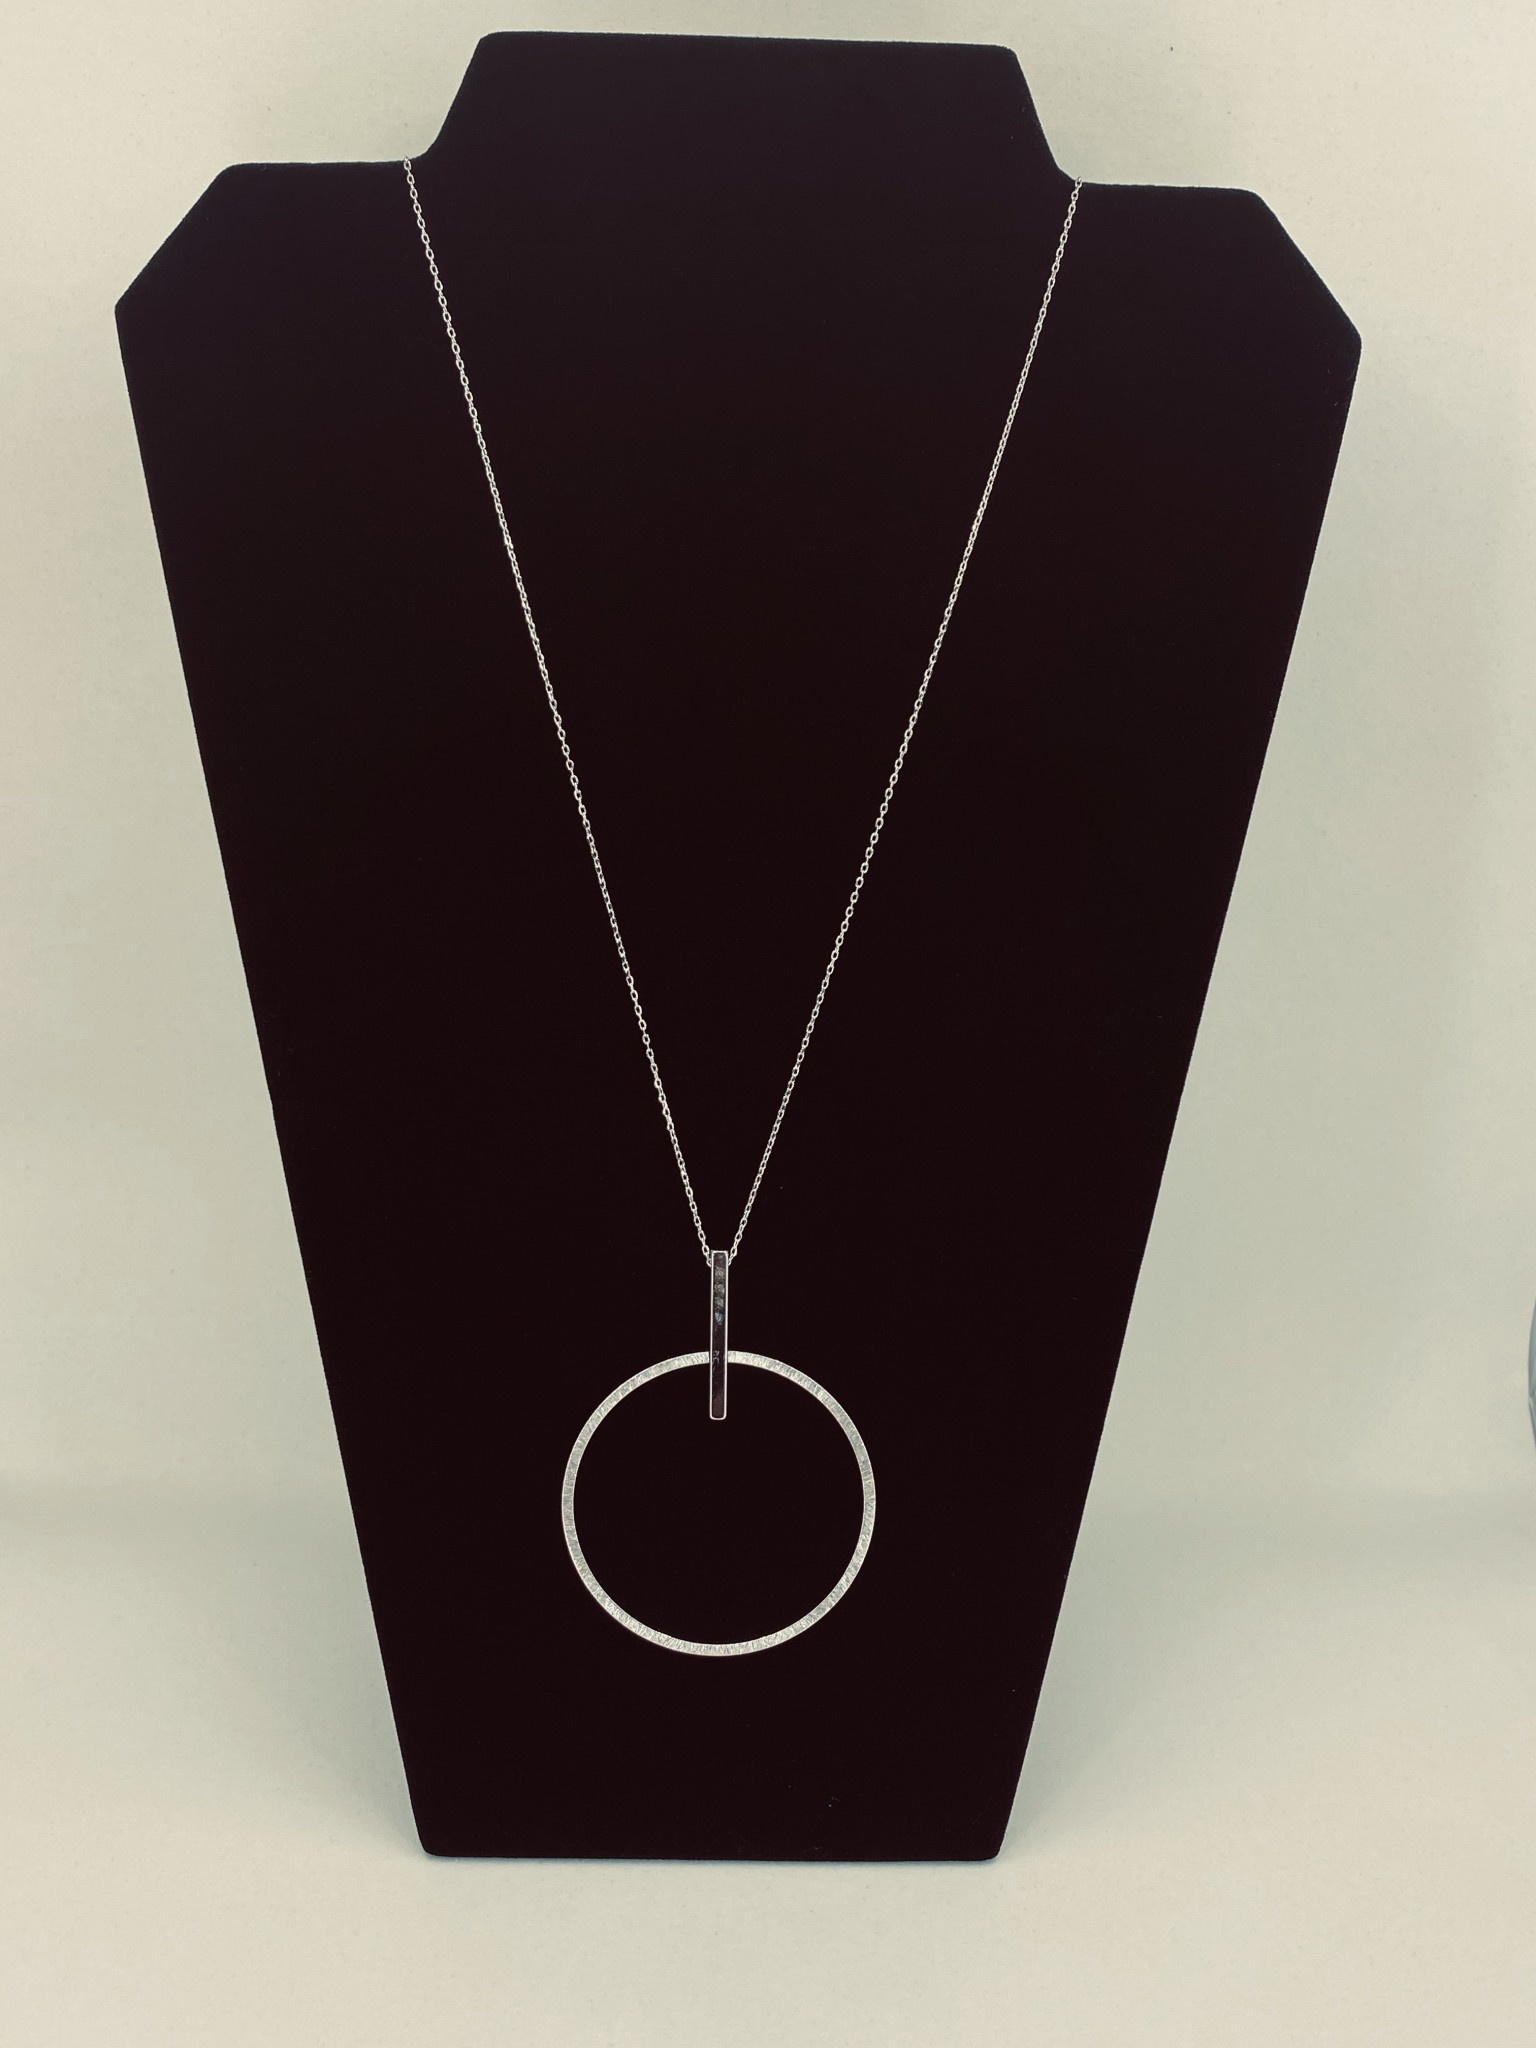 ETCHED OPEN CIRCLE WITH SMALL BAR(SILVER)